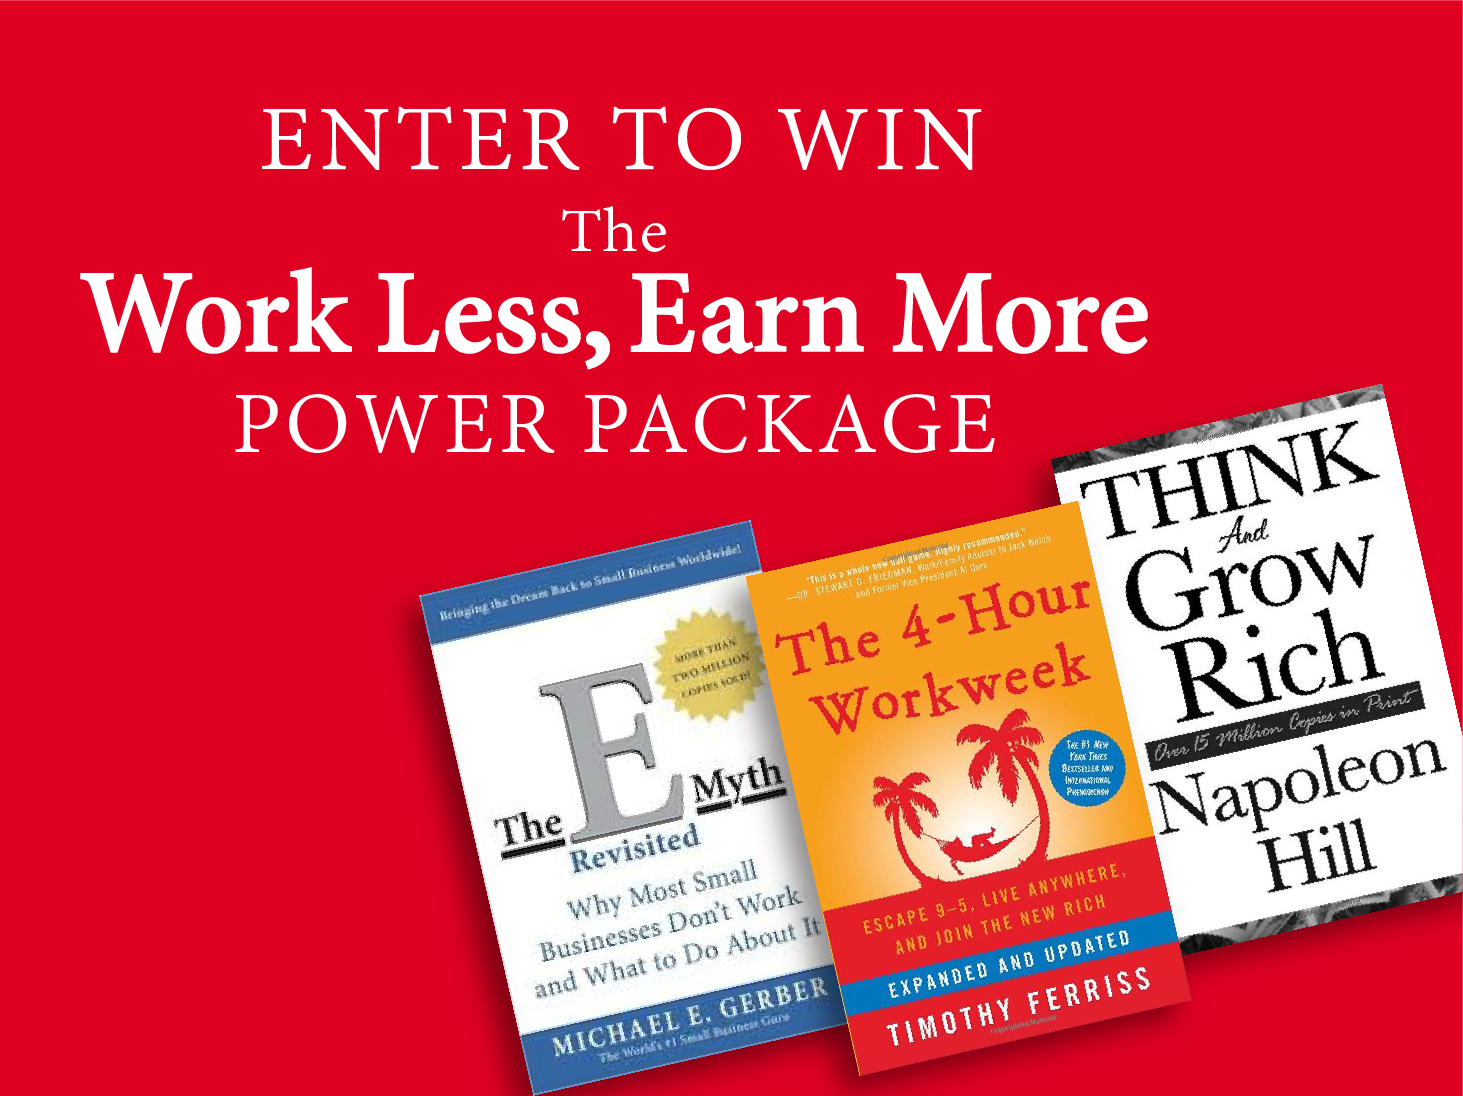 E Myth, 4-Hour Workweek, Think and Grow Rich book giveaway